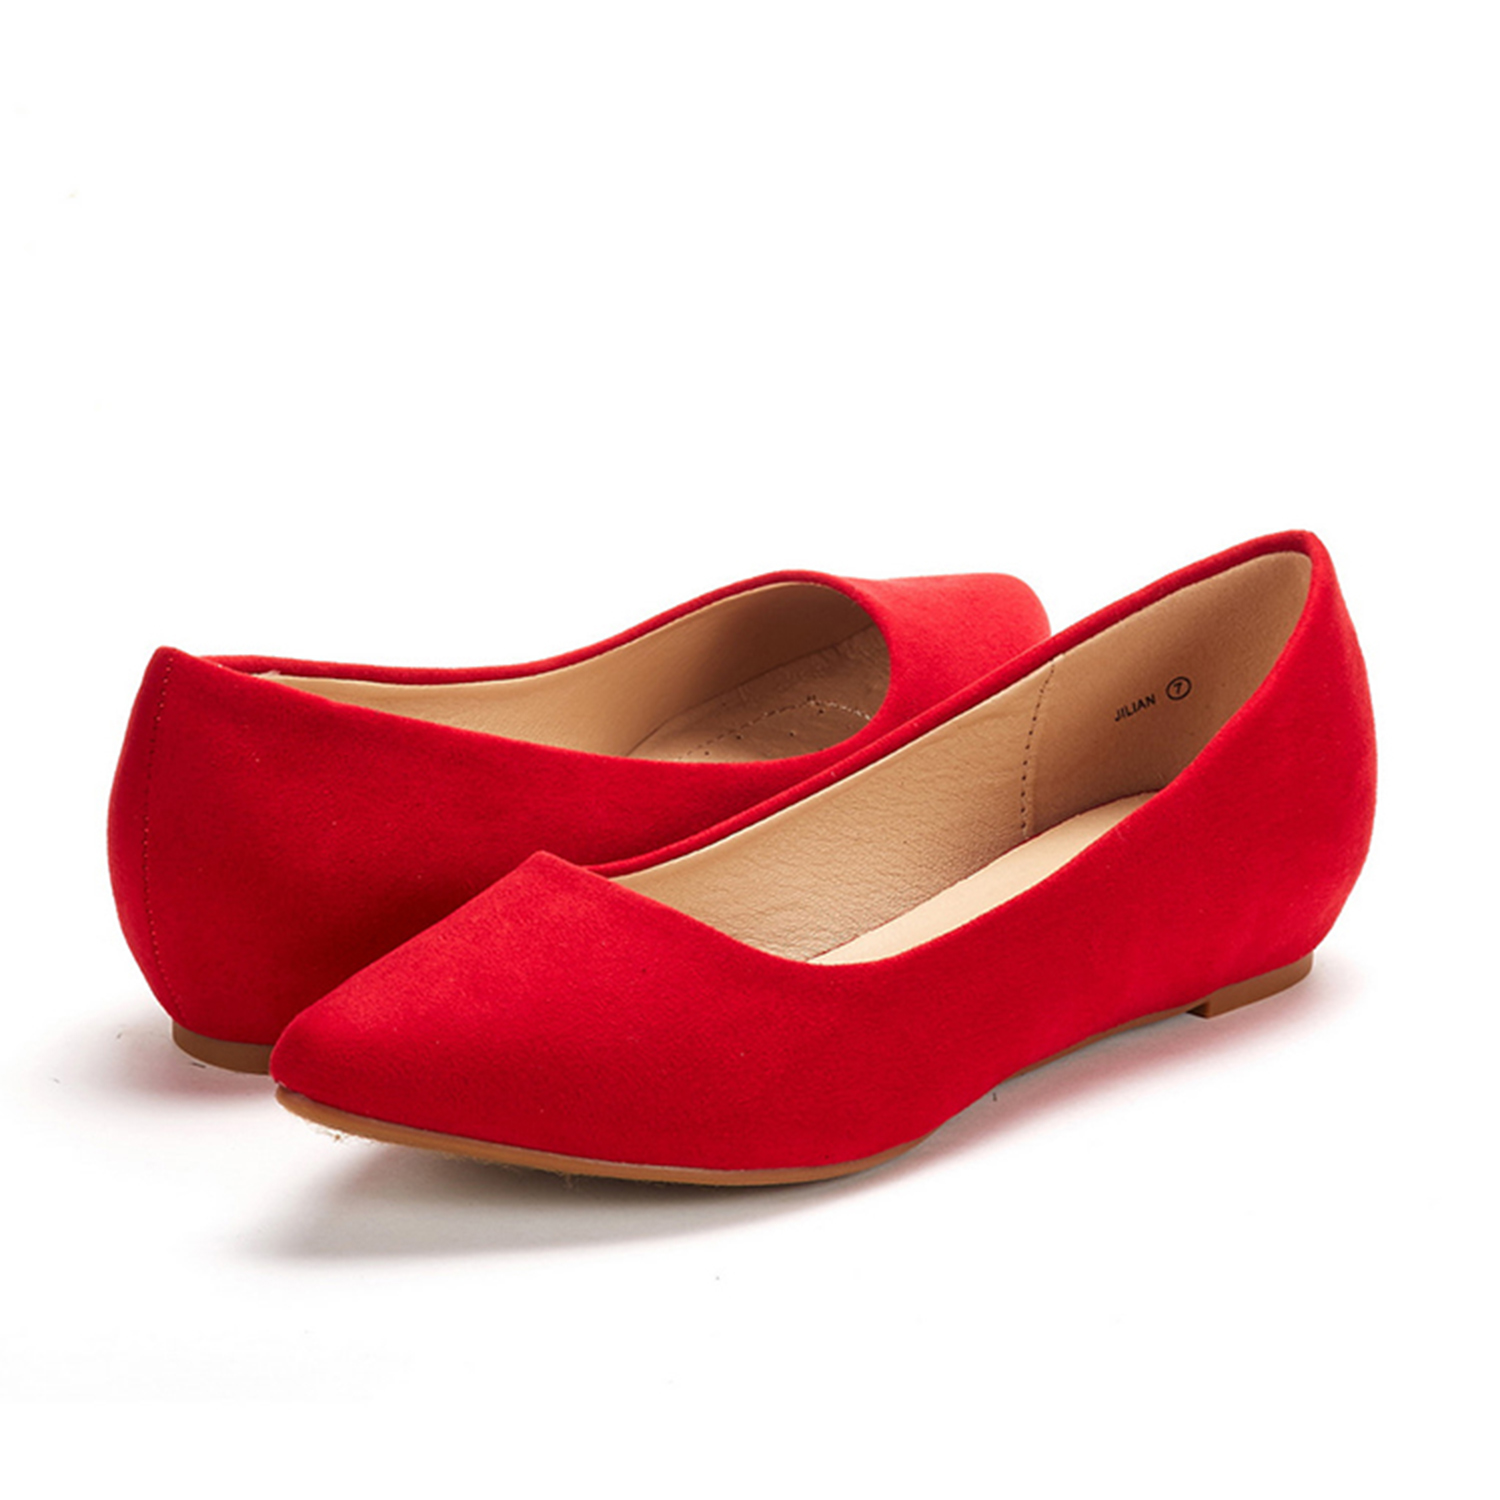 DREAM-PAIRS-Women-Low-Wedge-Flats-Ladies-Pointed-Toe-Slip-On-Comfort-Flat-Shoes thumbnail 3